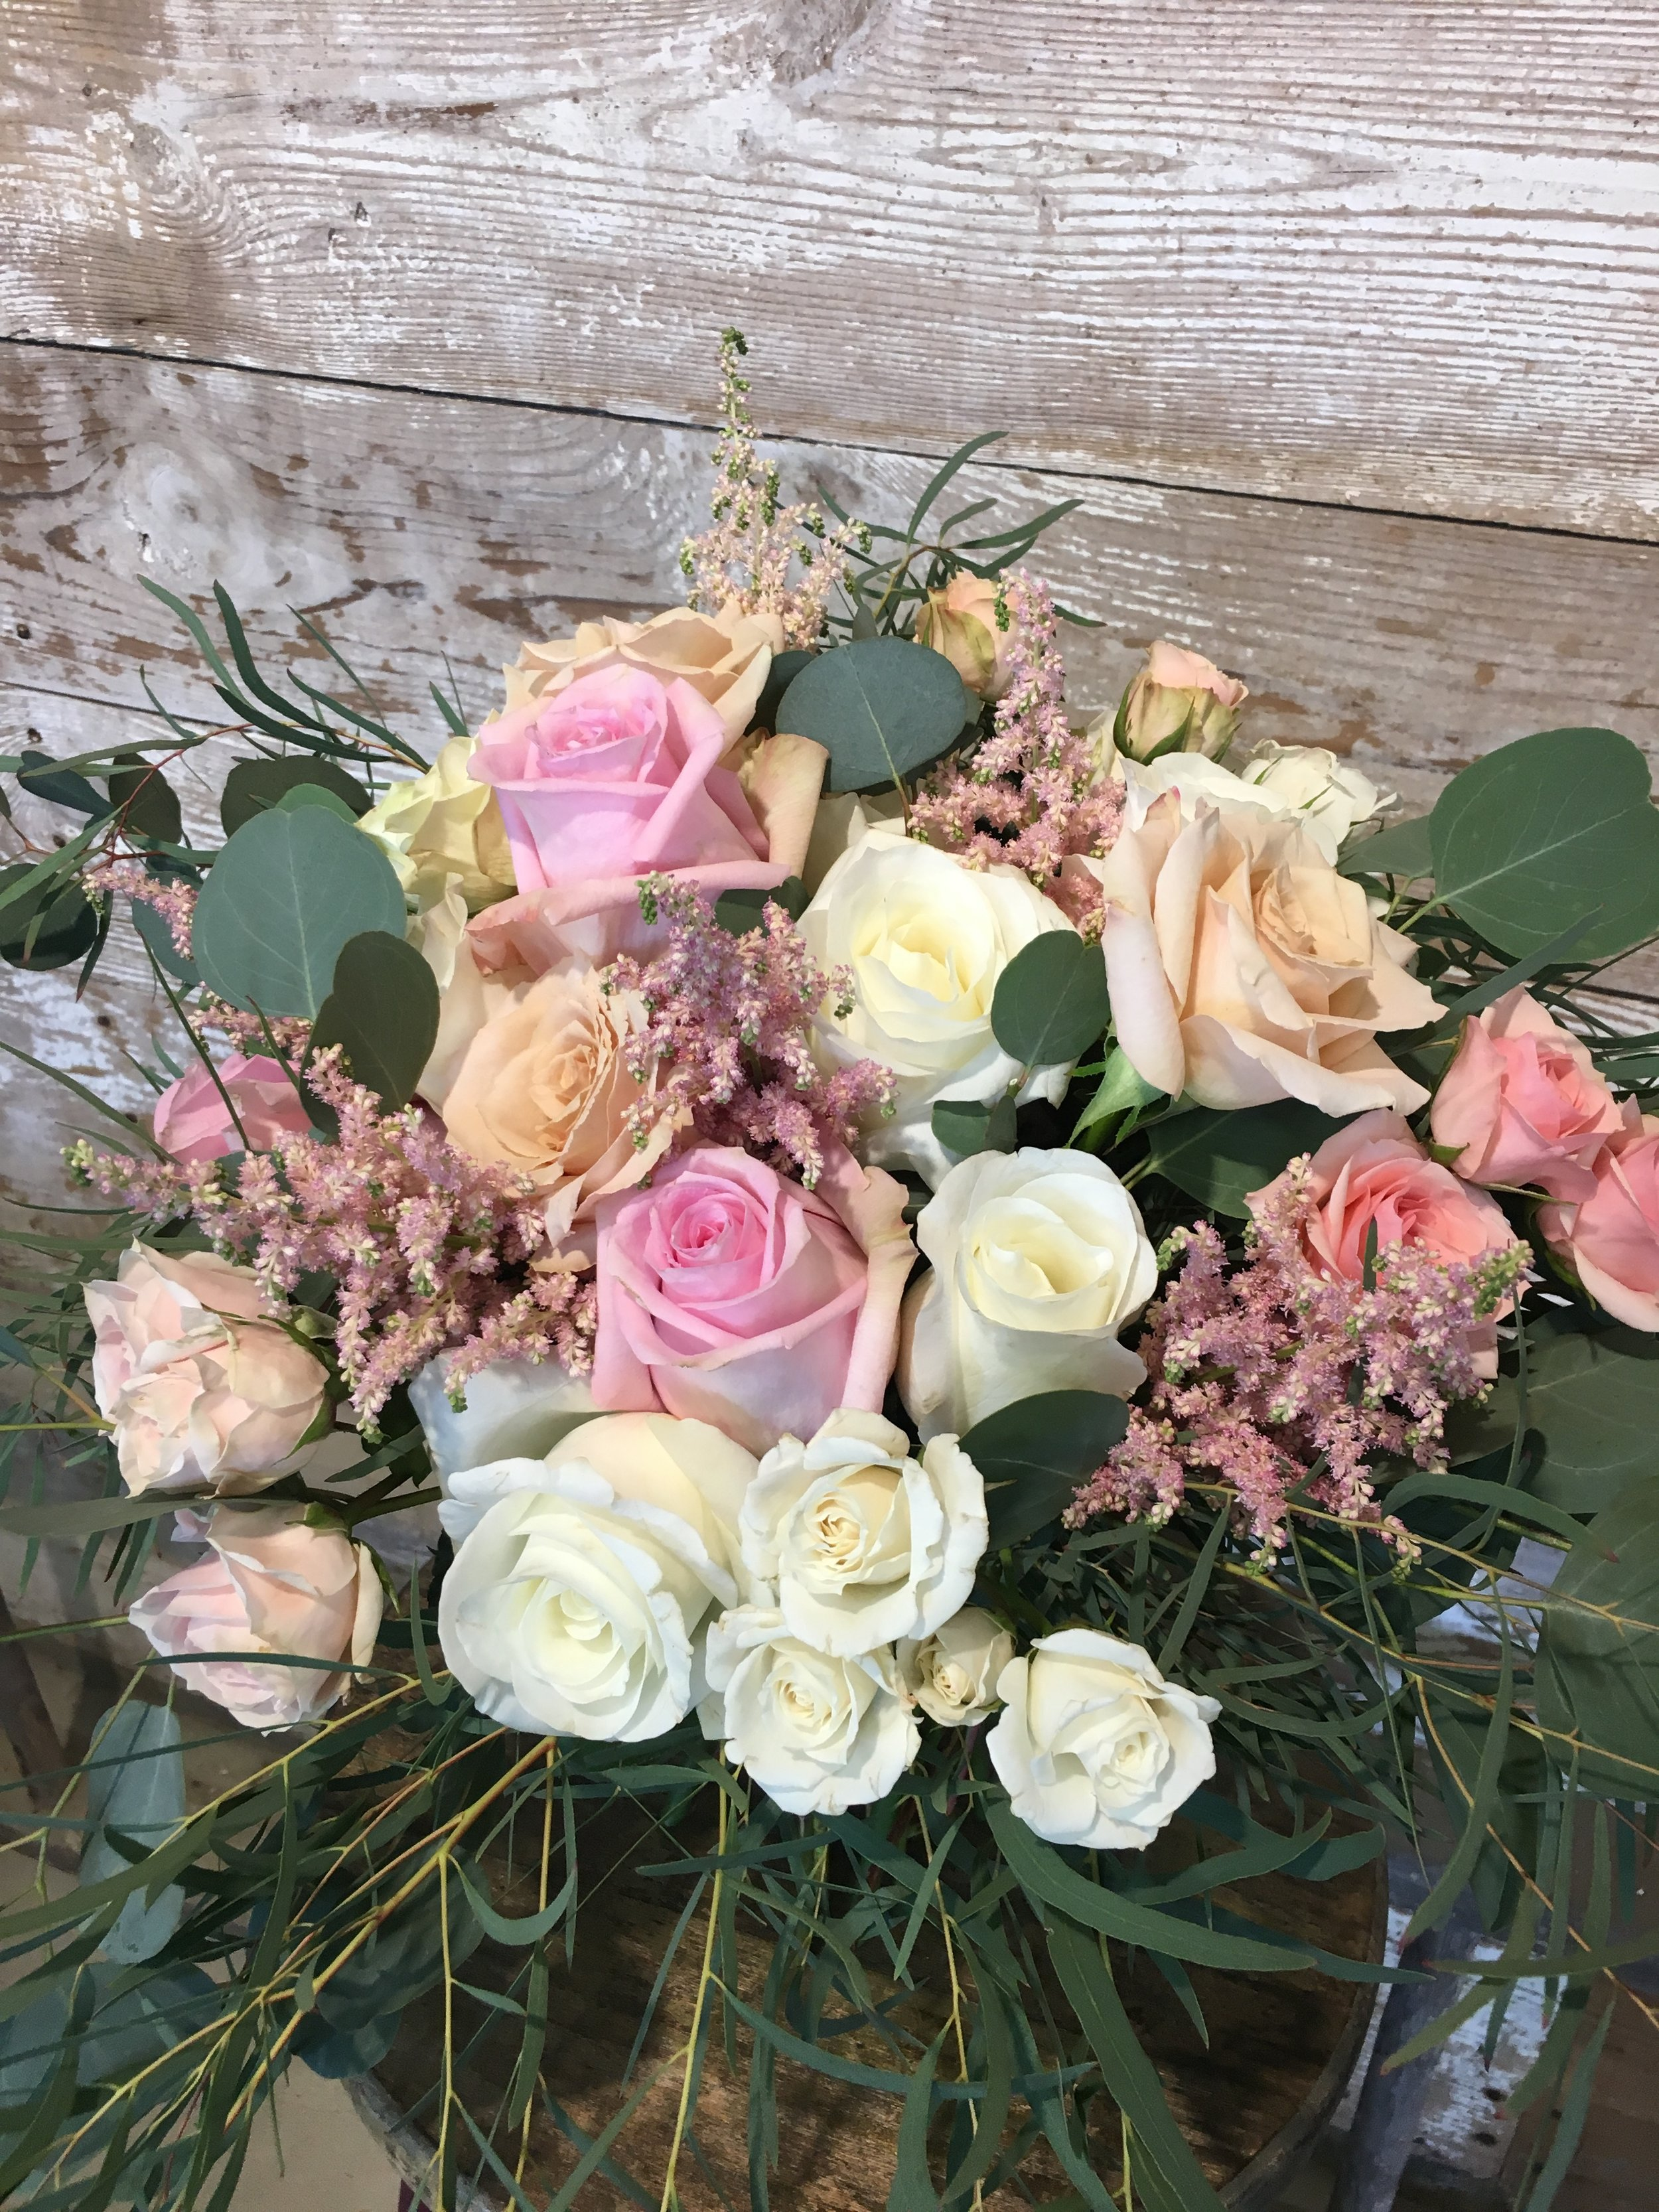 The classic blush & white bouquet with a vintage twist! *this bouquet was much larger in real life than it appears in photos!